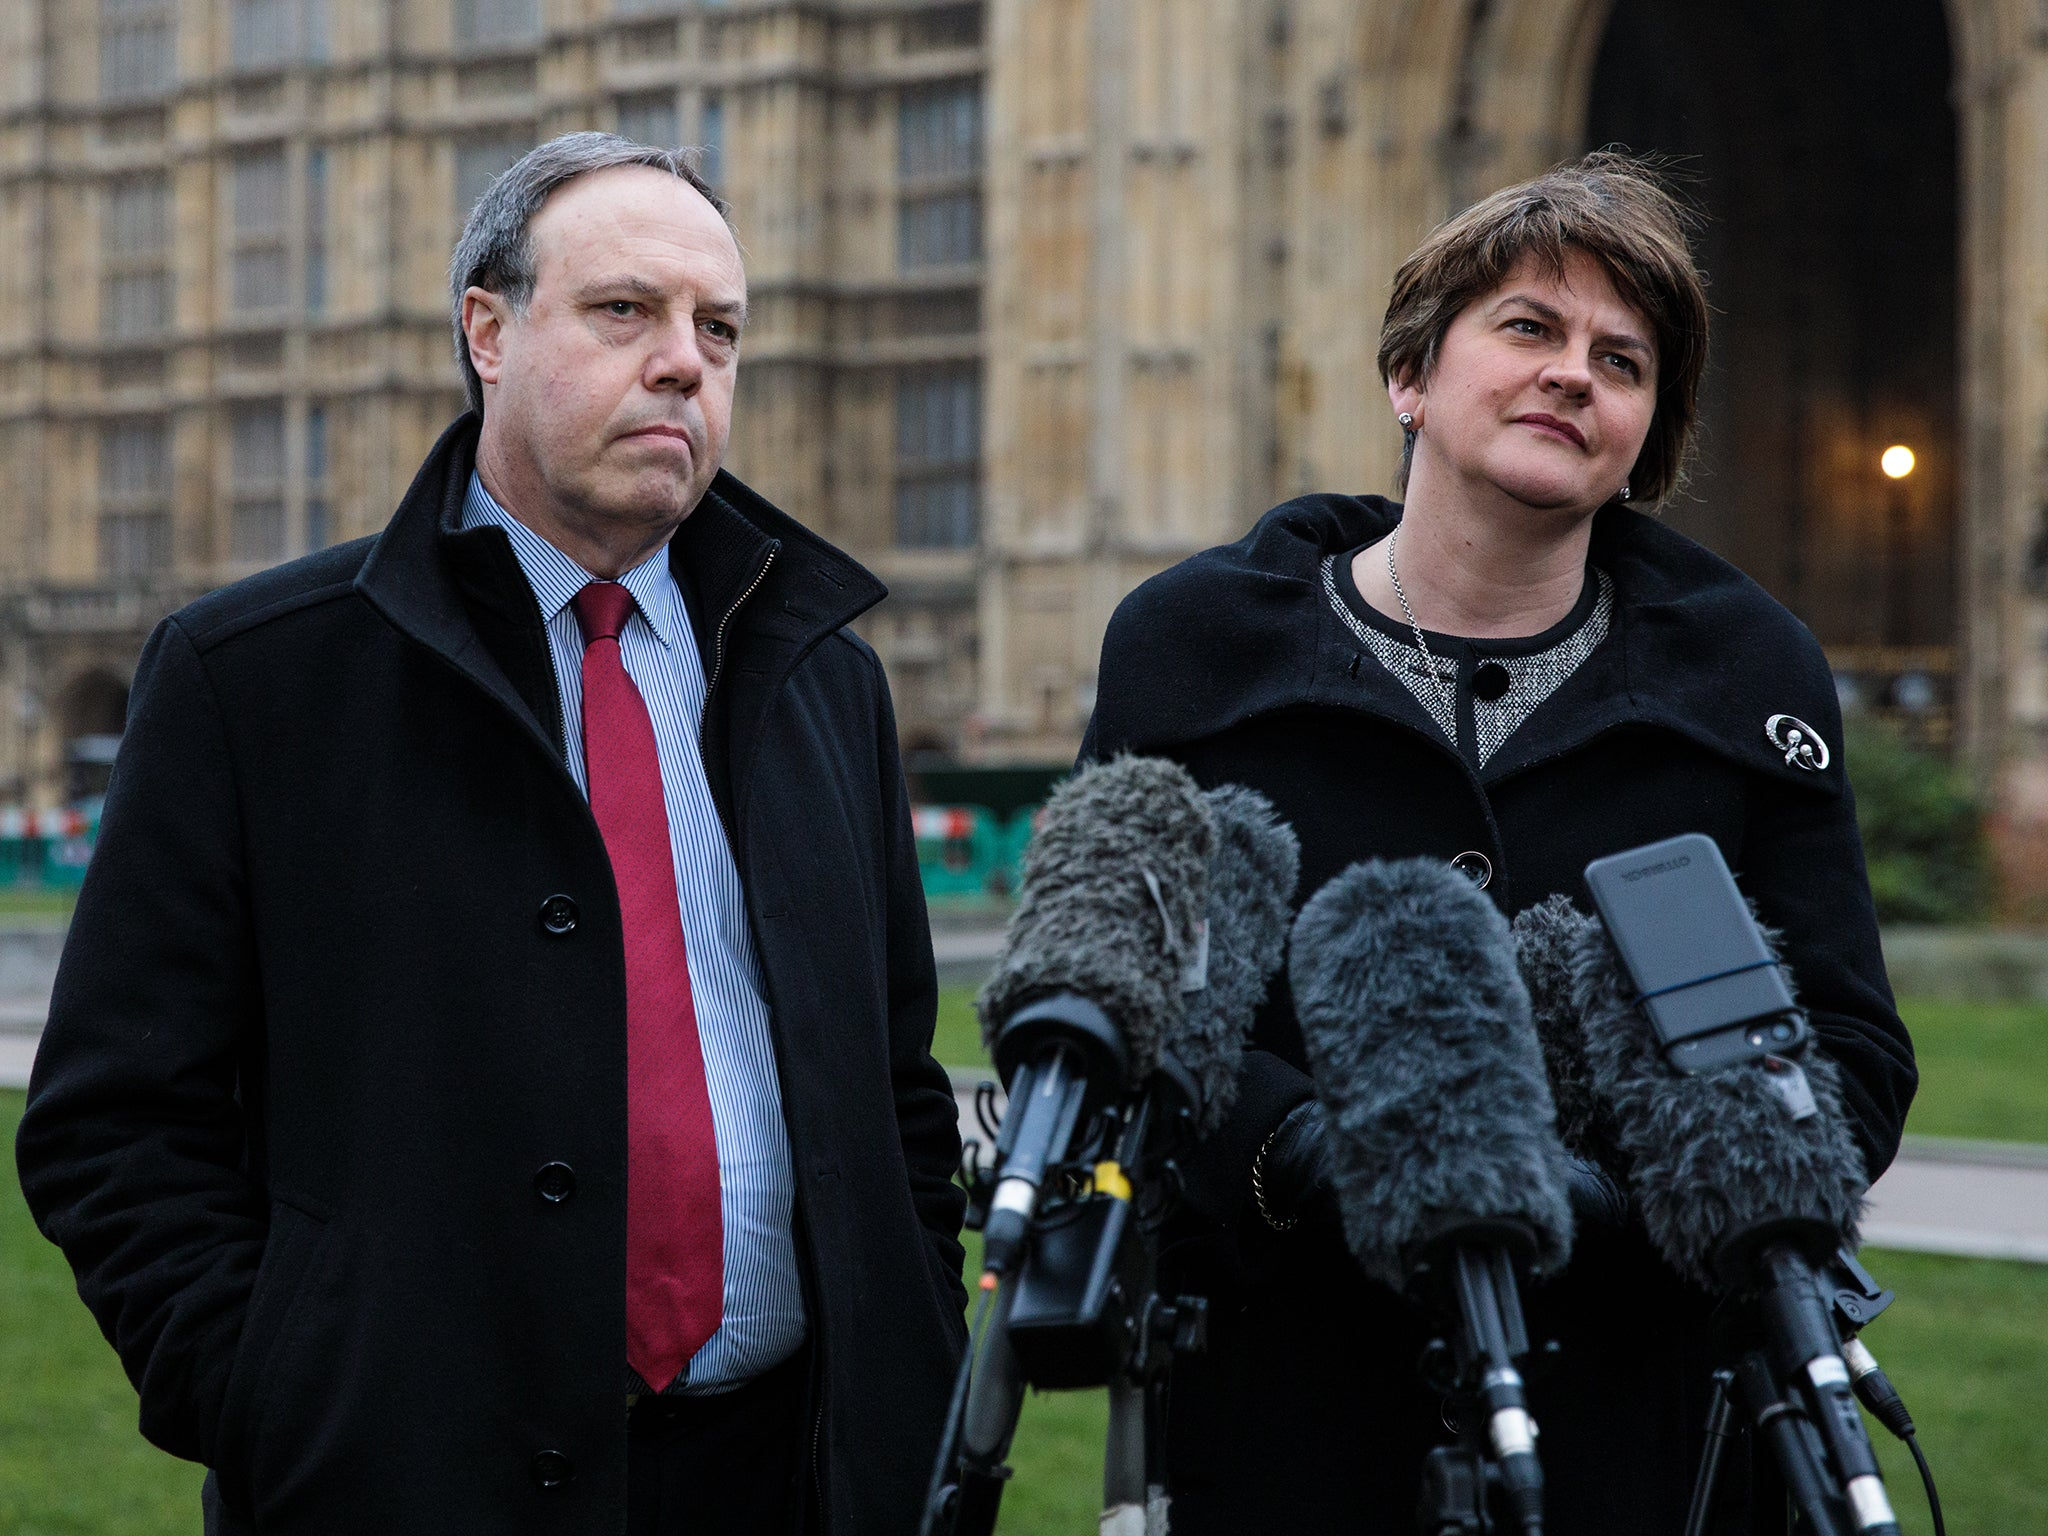 fe96ef28e54 DUP threaten to torpedo Theresa May's Brexit proposals and say they could  vote with Labour | The Independent